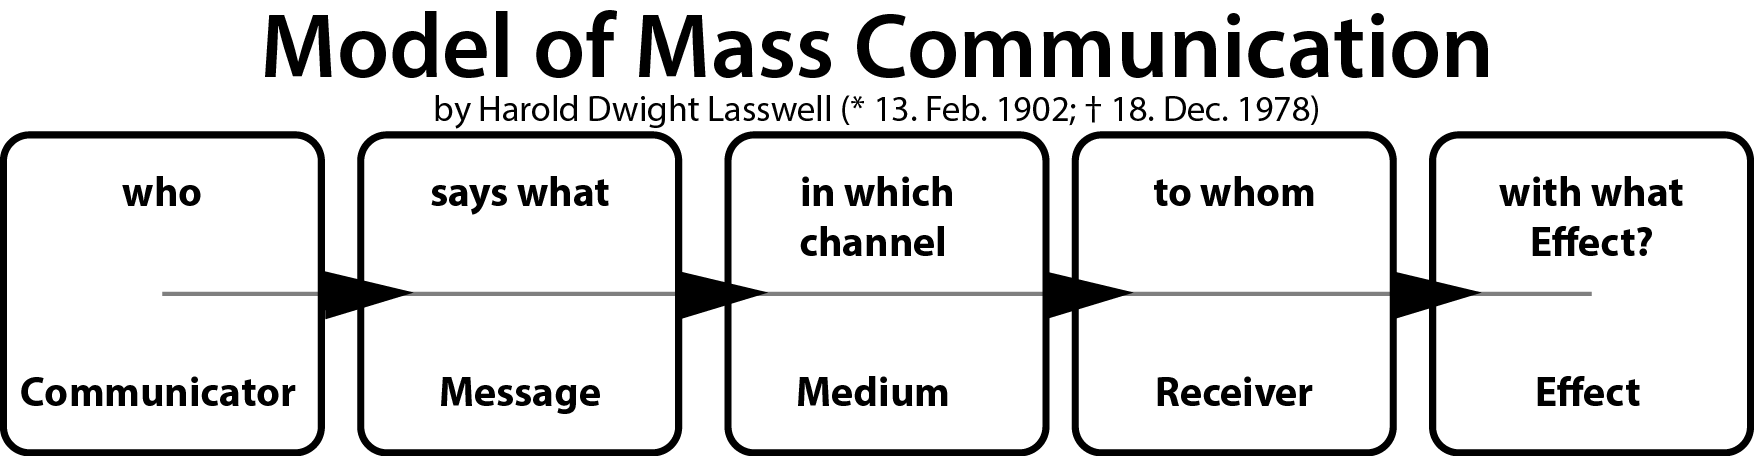 harold_dwight_lasswell_communication_model_mass_democracy_public_relations_psychopathology_politics_kritisches_netzwerk_propaganda_massenmedien_meinungsmanagement_demokratie.png